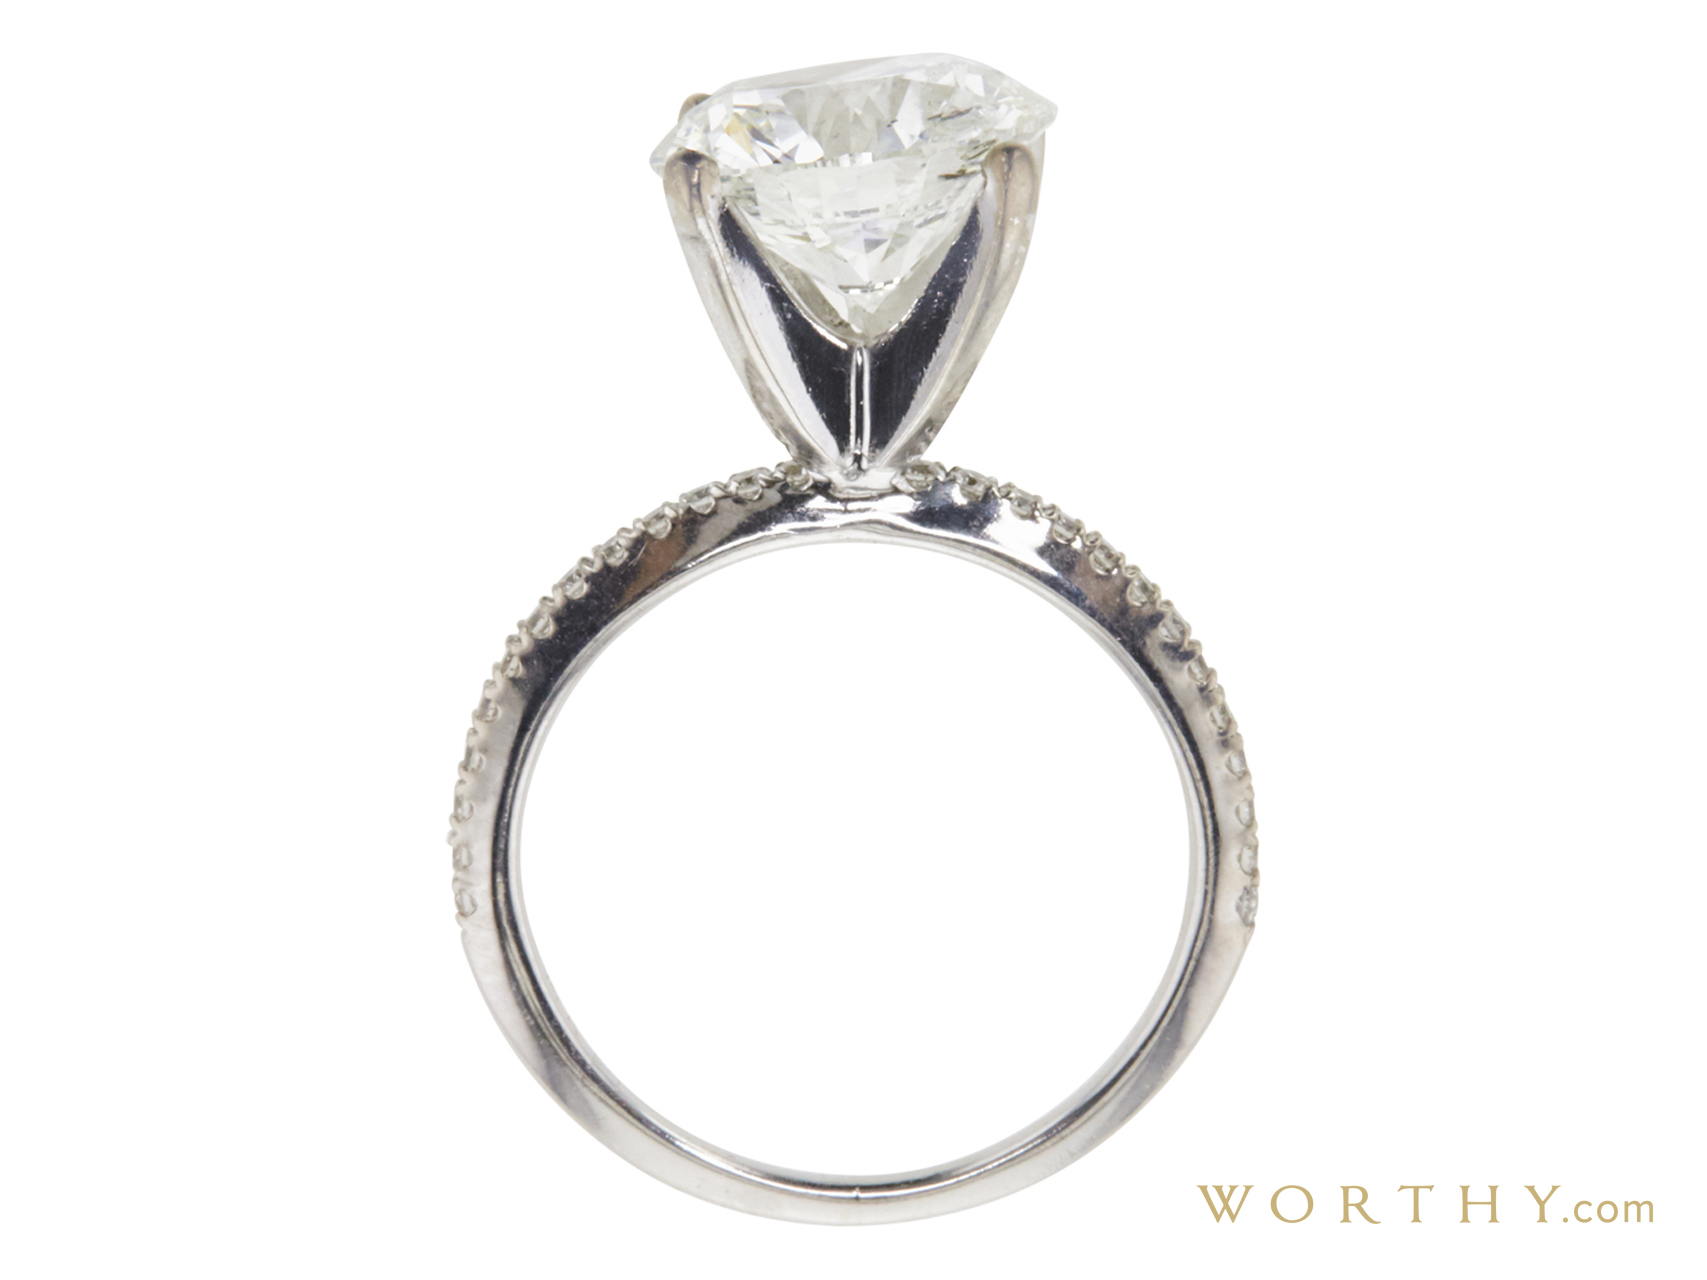 1.52 ct. Princess Cut Solitaire Ring | Sold For $4,688